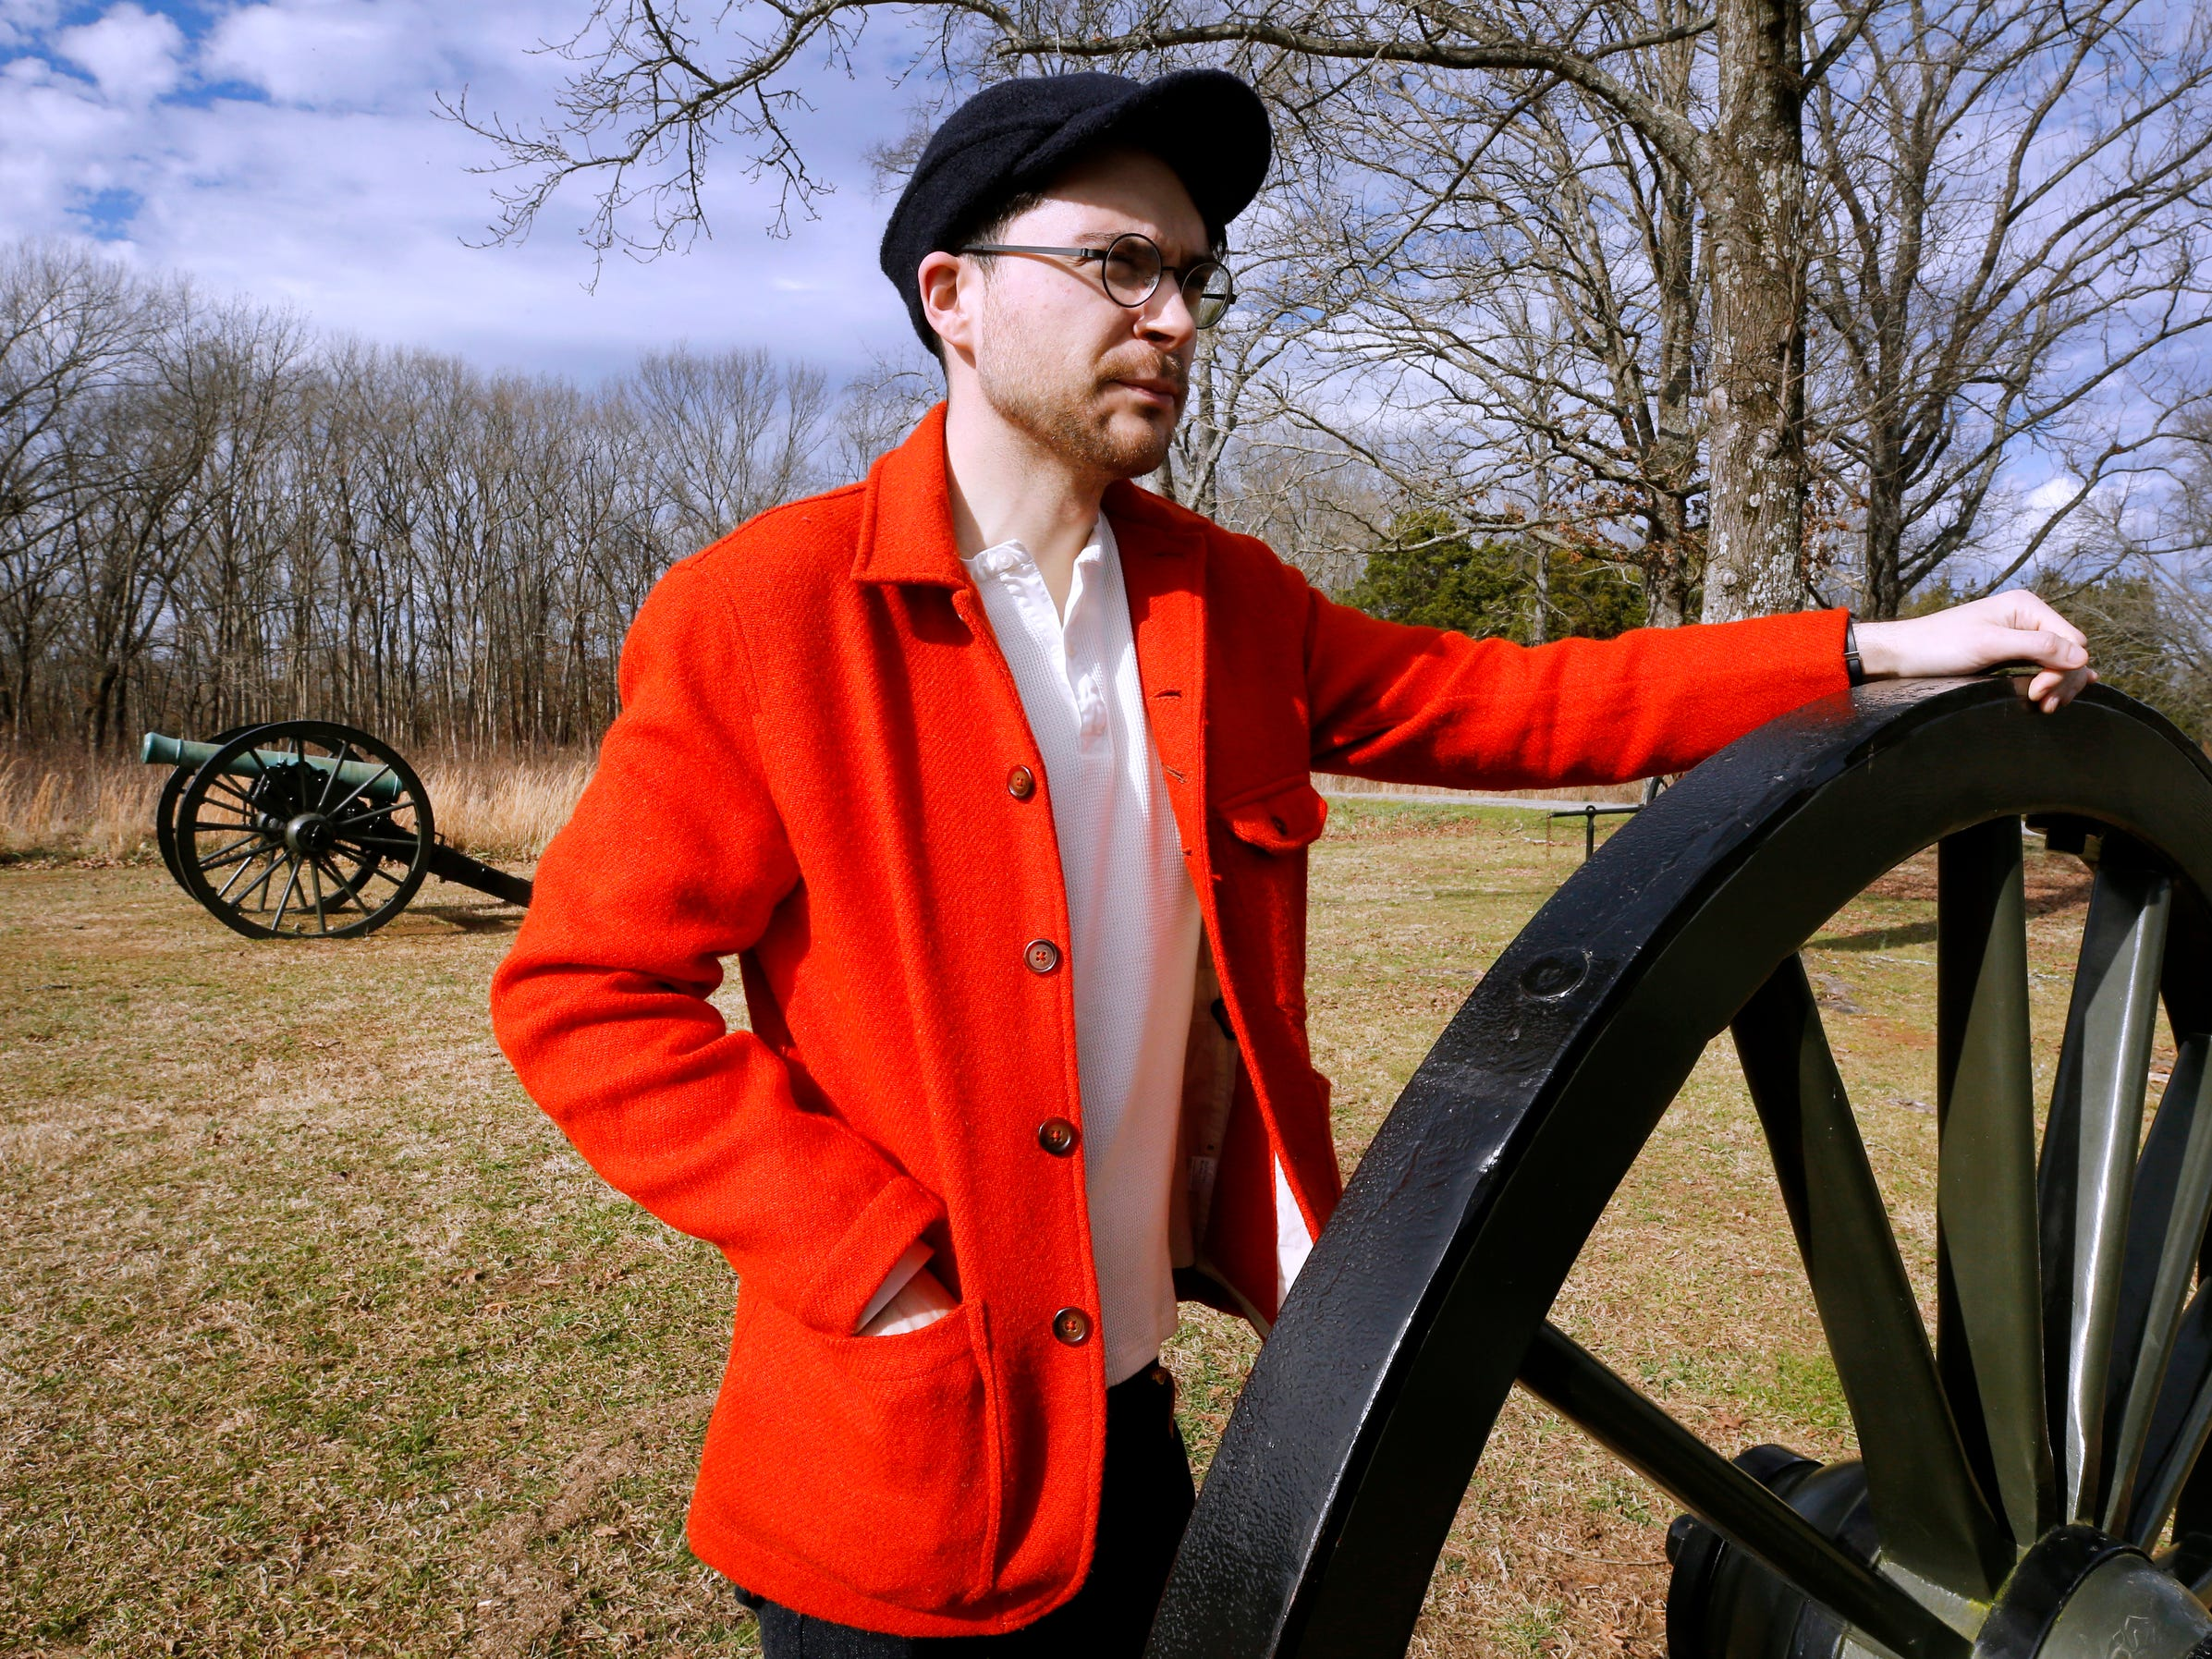 William Schlaack visits the Stones River National Battlefield, despite being closed on Thursday Jan. 7, 2019, after the government shutdown on Dec. 22, 2018.